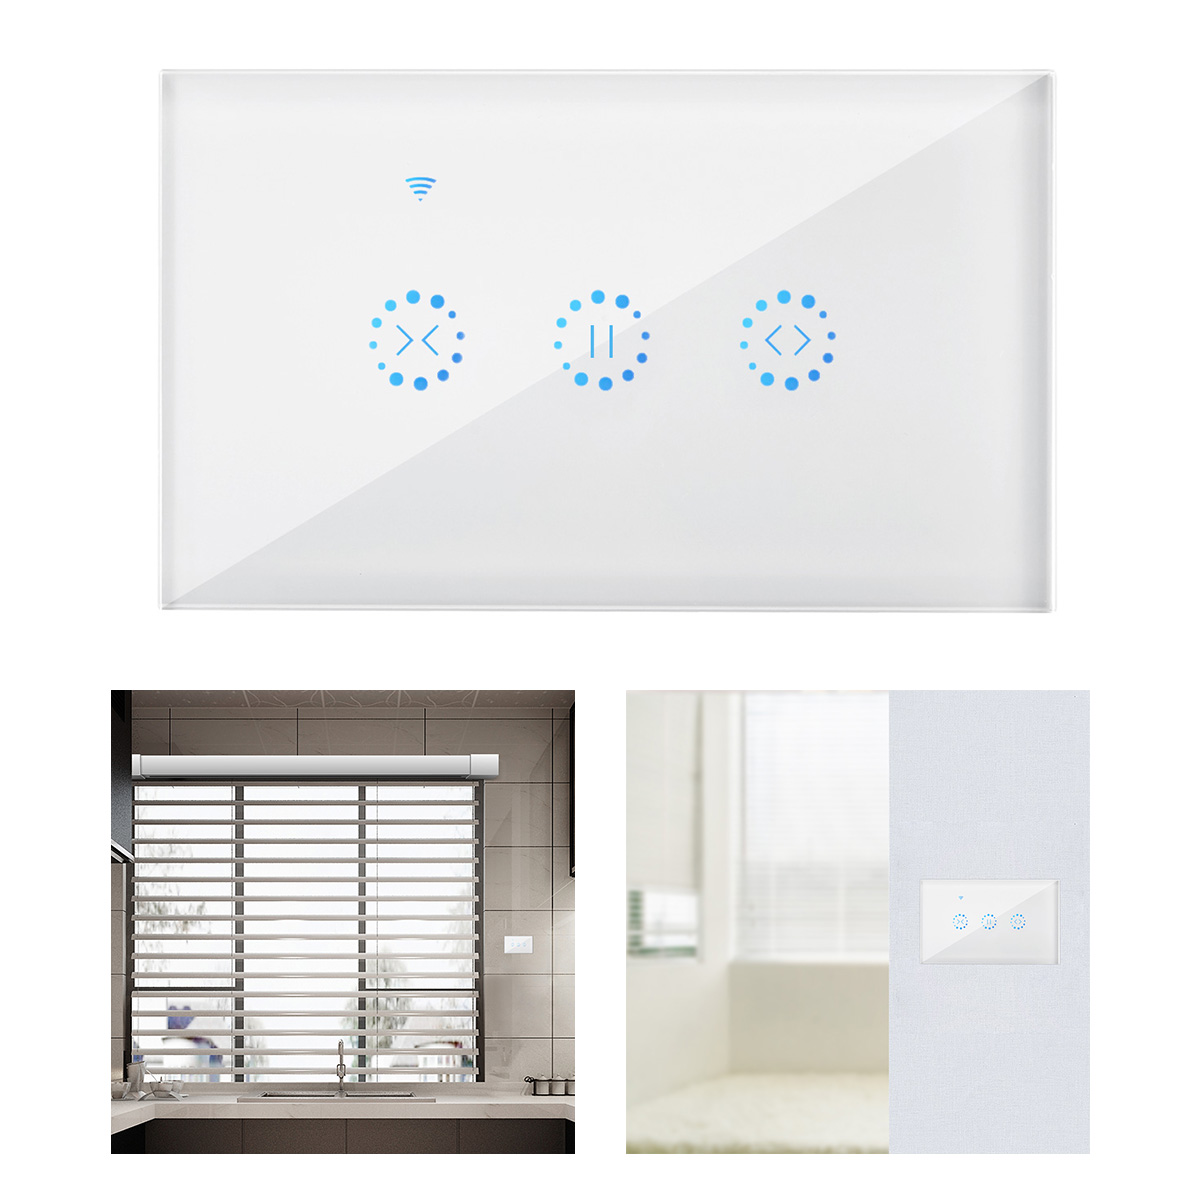 Ewelink Smart Curtain Motor Electrical Blinds WiFi Switch Touch APP Voice Control By